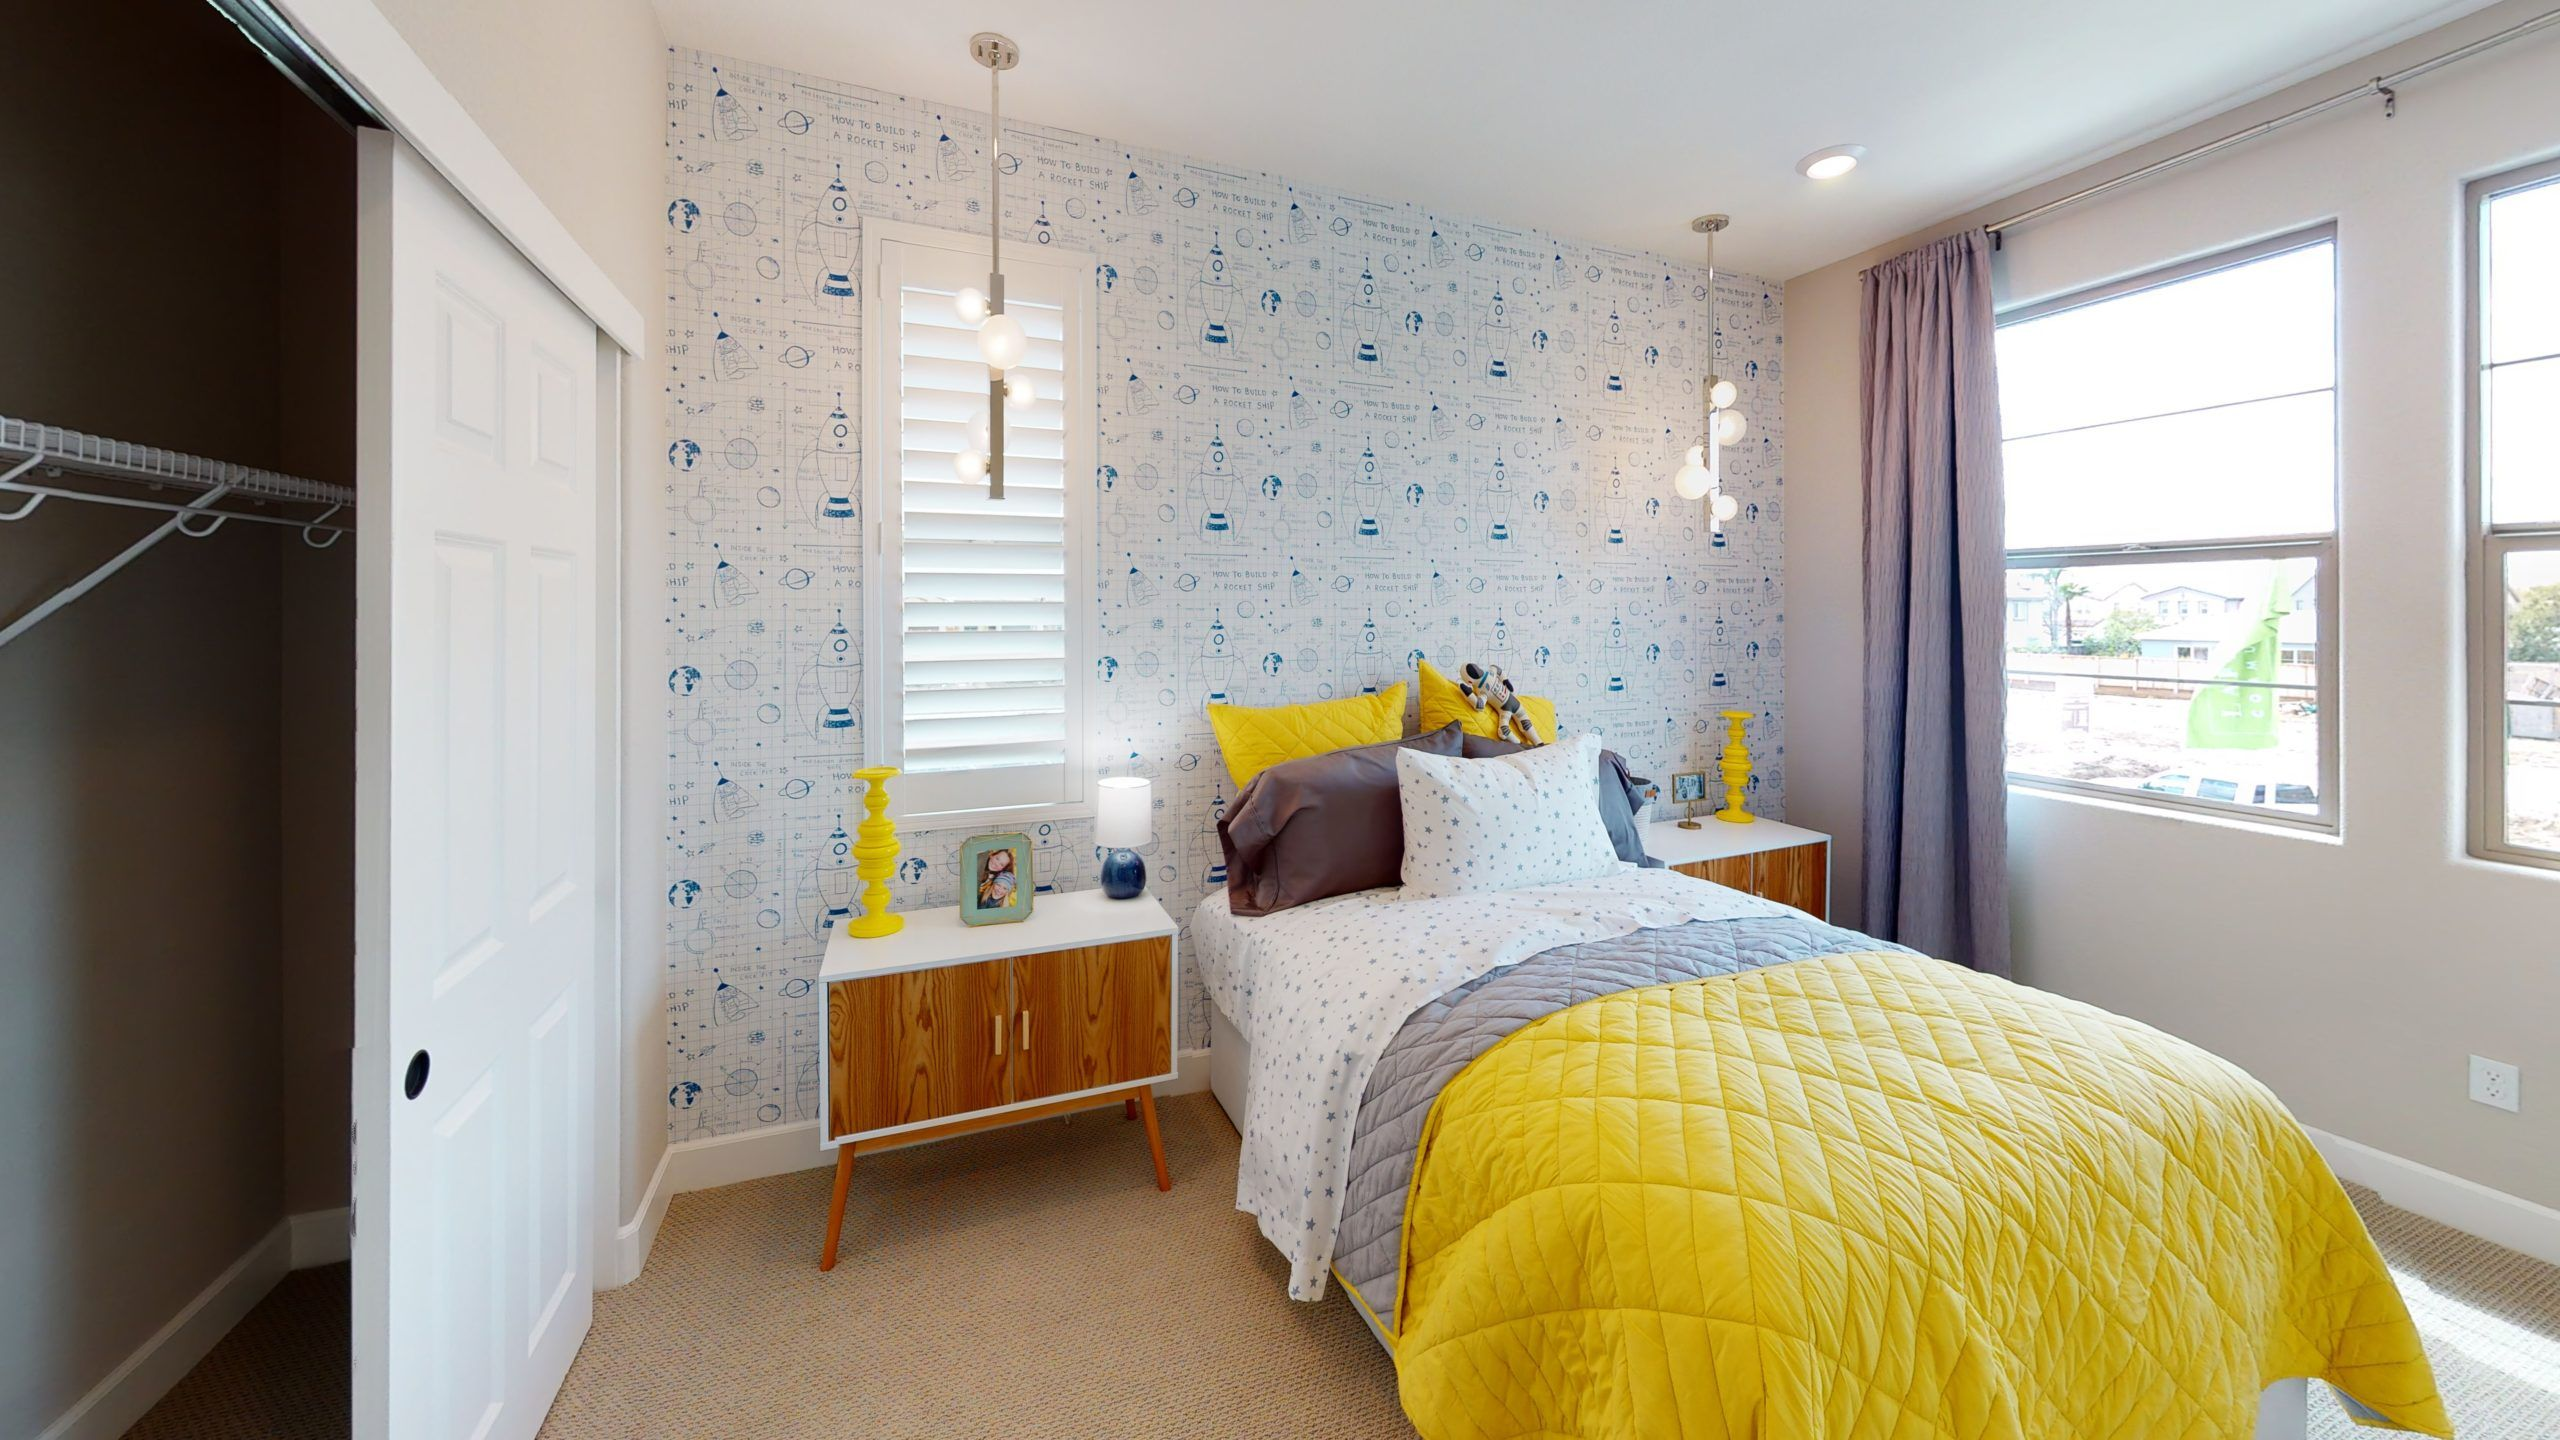 Bedroom featured in the Residence 1 By Next New Homes Group in Sacramento, CA